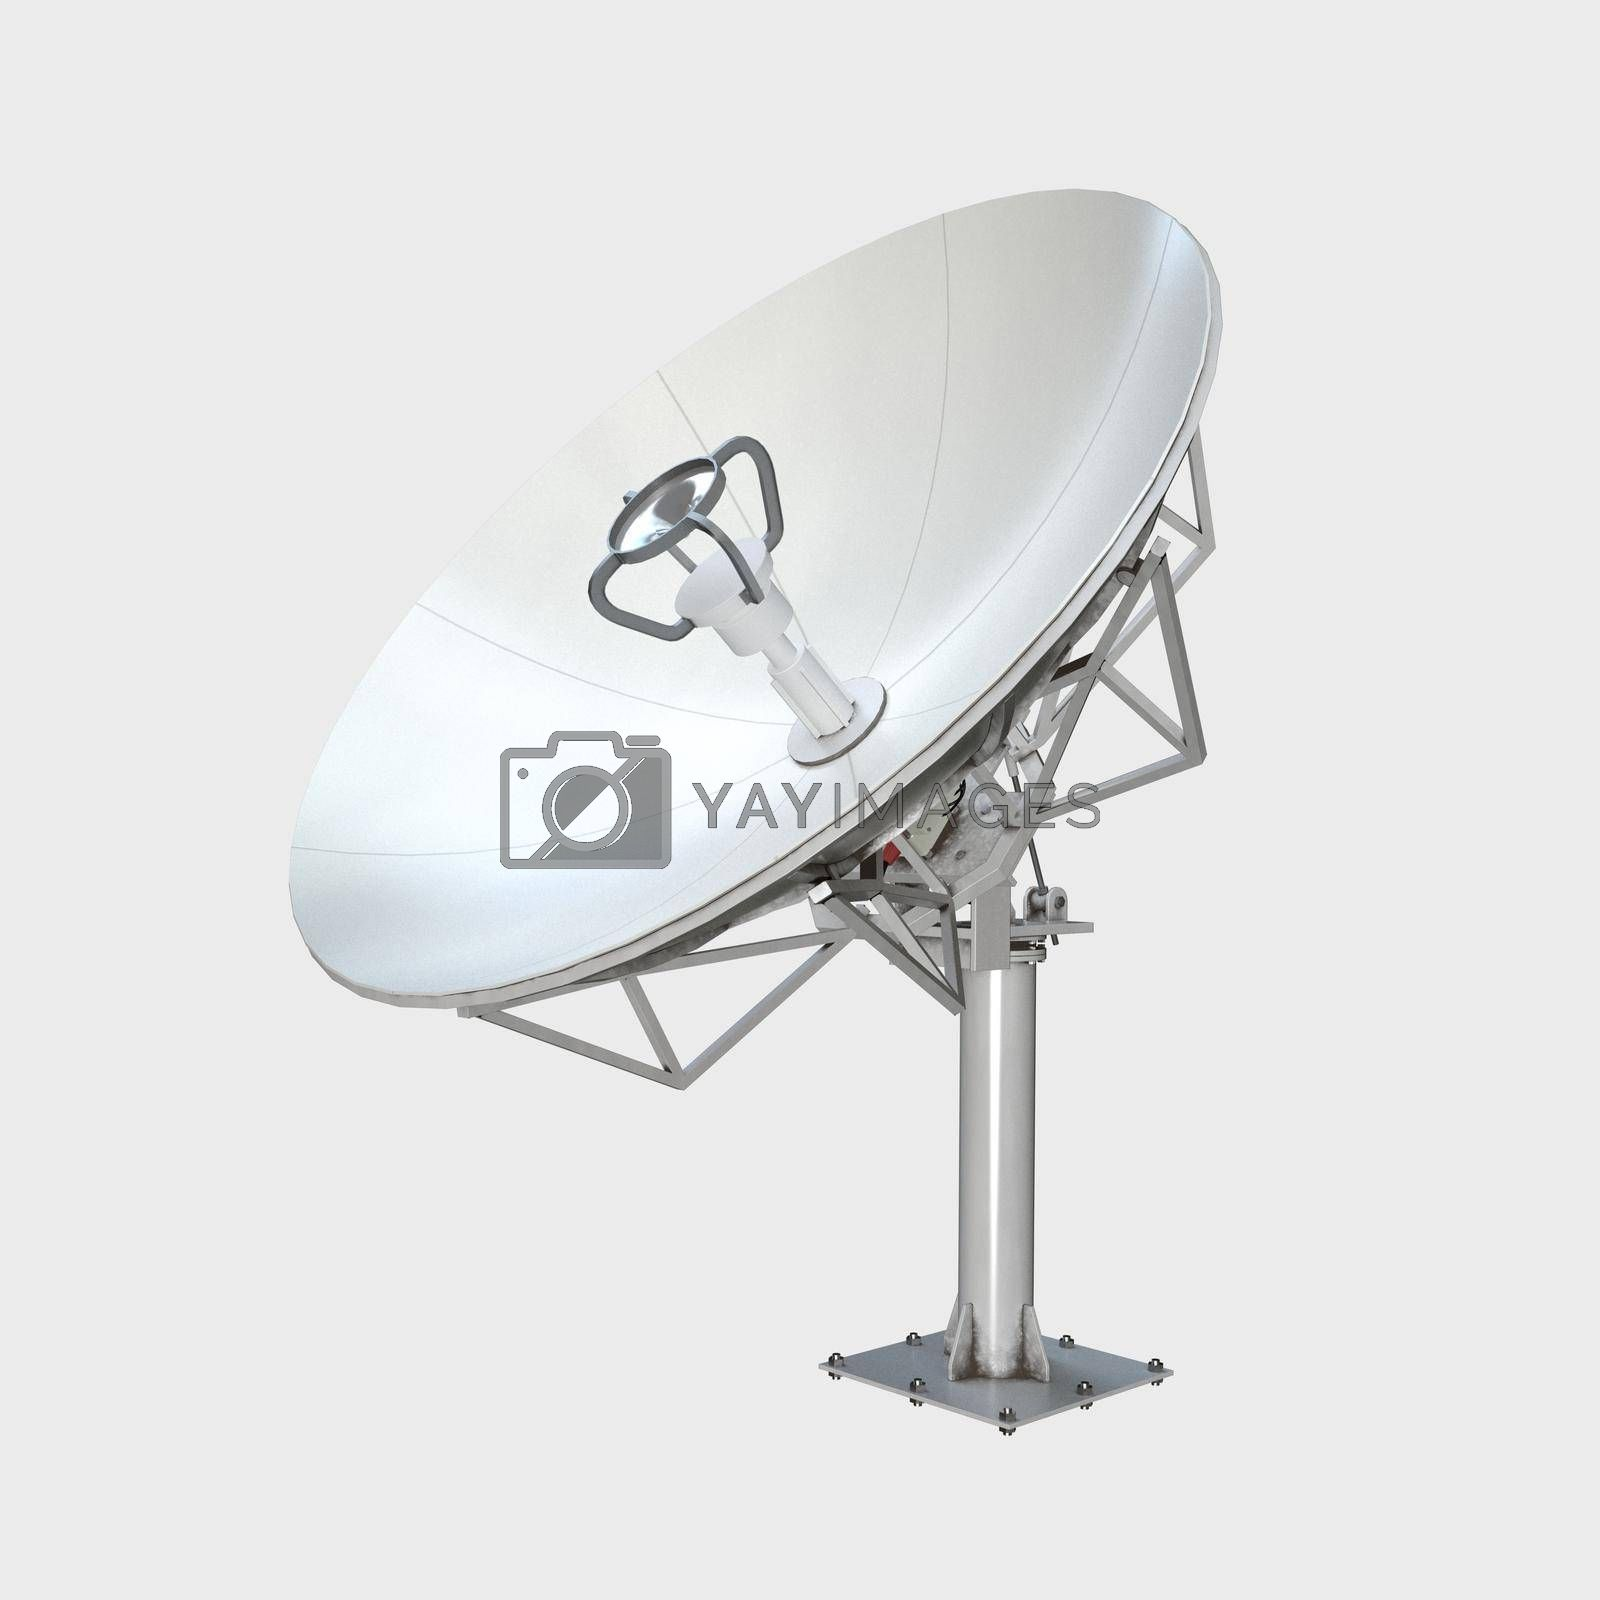 Satellite dish isolated on white background 3d illustration